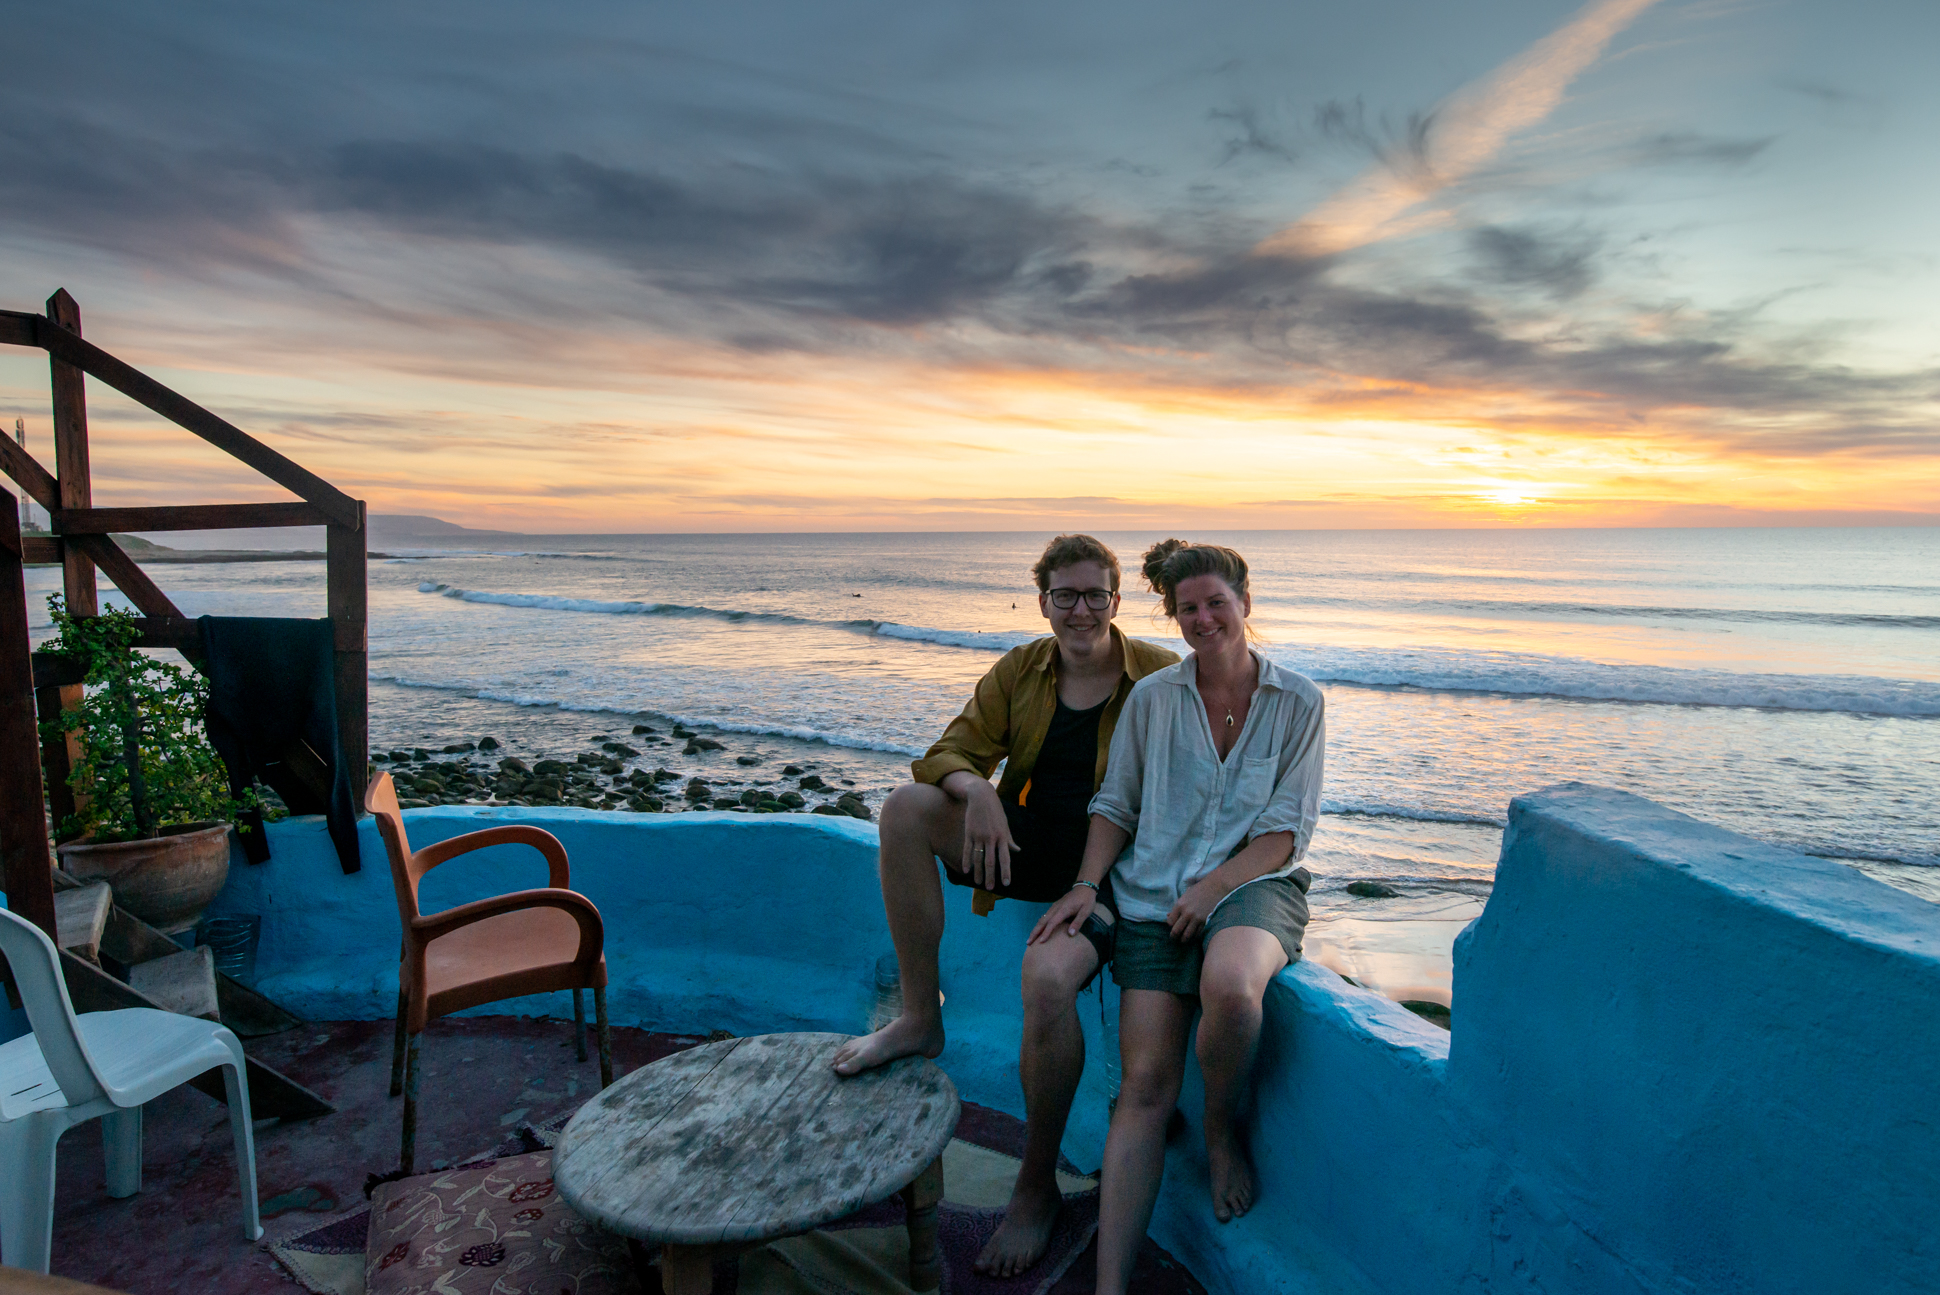 Selfie with Ellis & Me photography. Sunset at Imsouane Morocco. Ocean view.